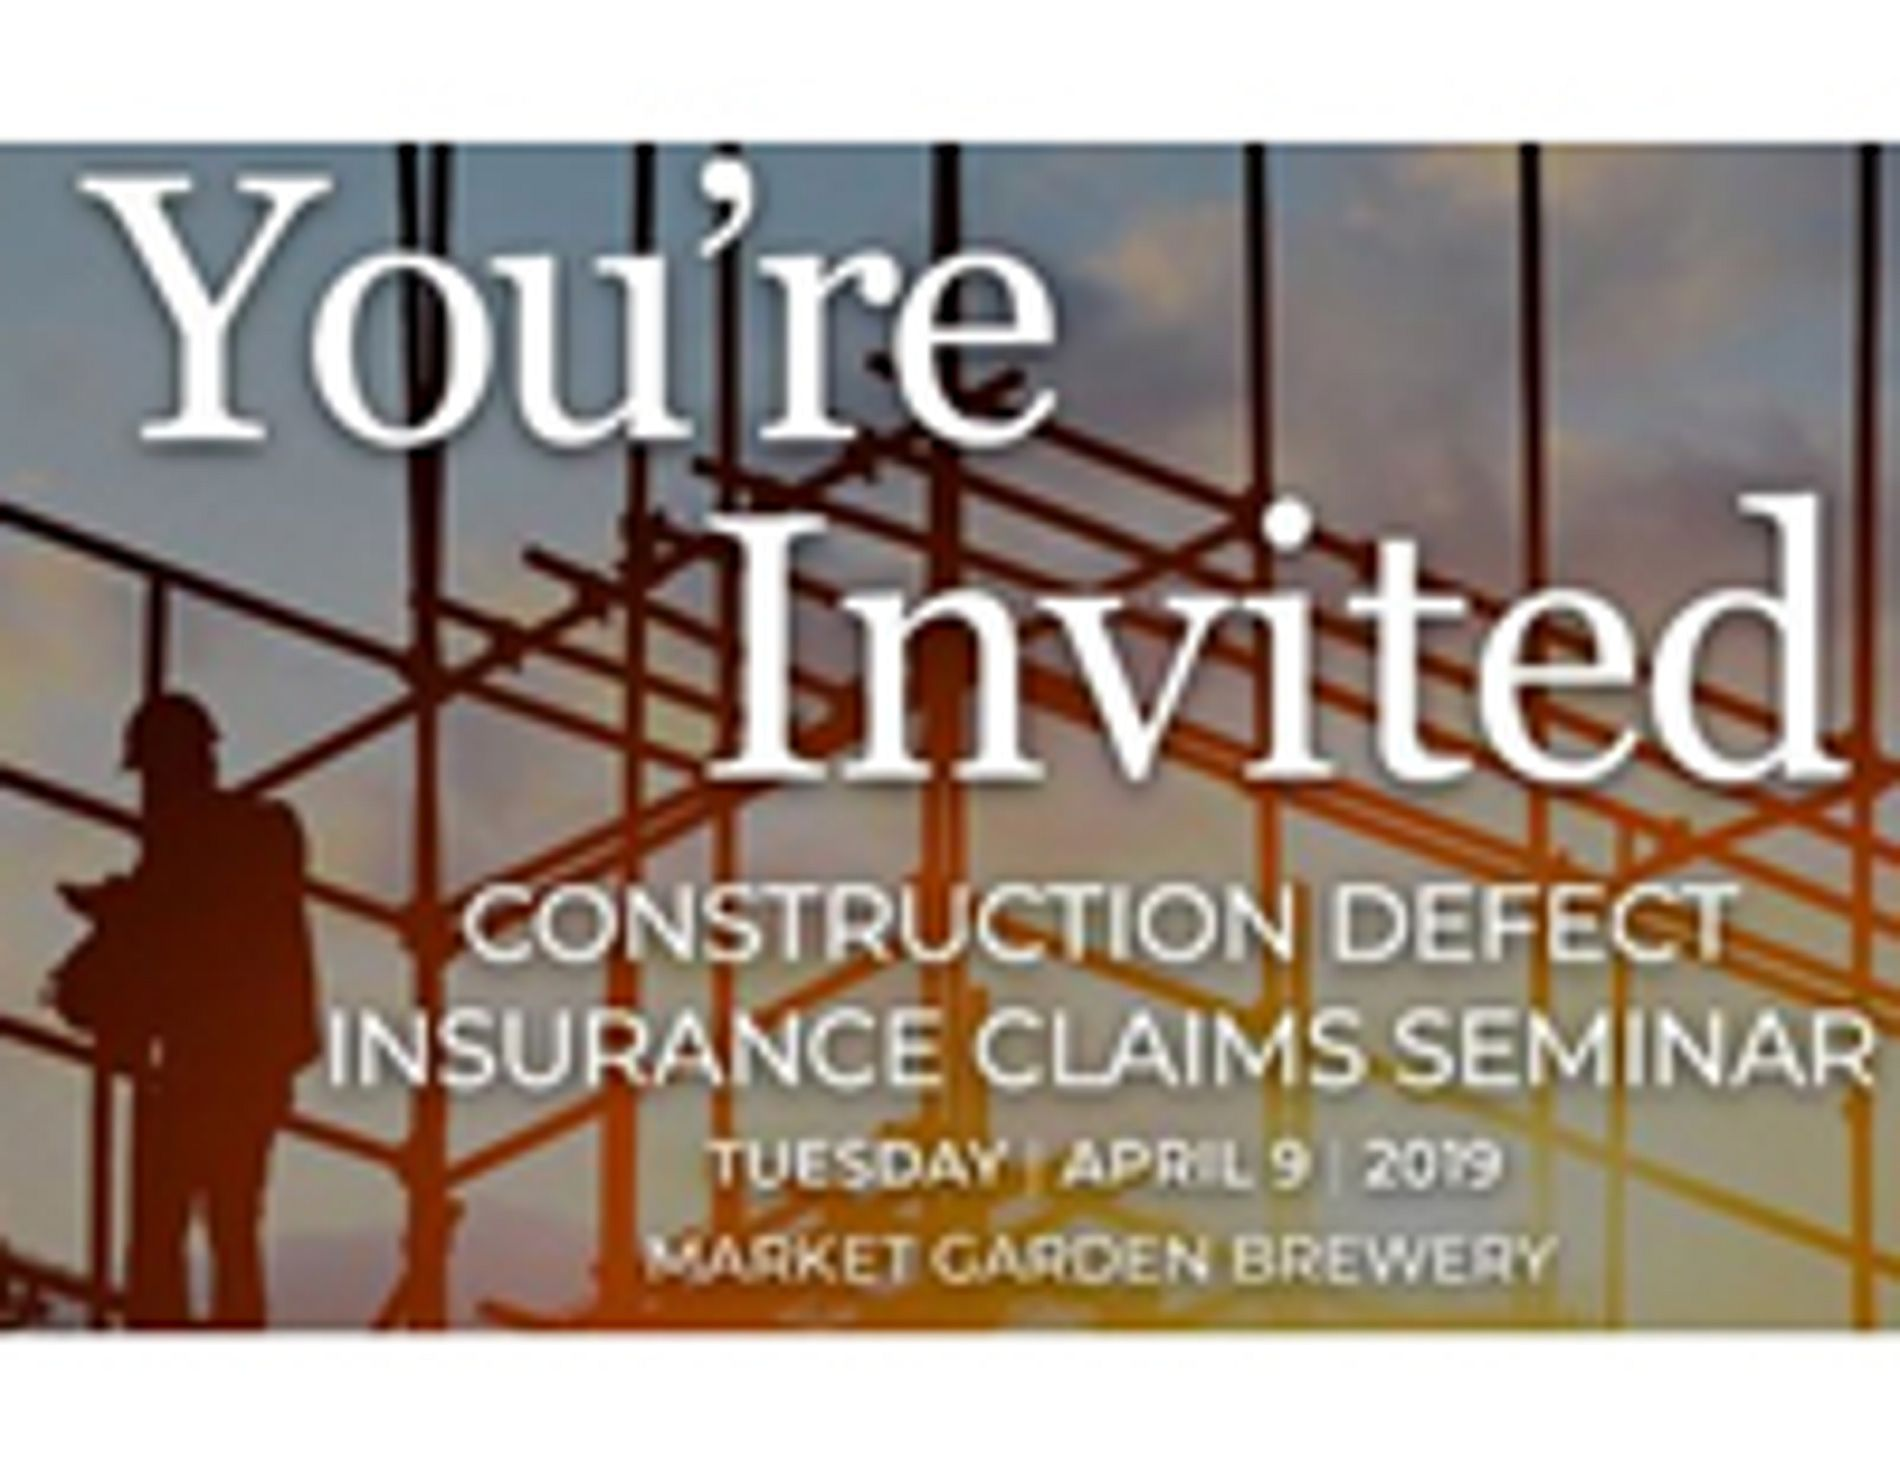 Construction Defect Insurance Claims: April 9 Seminar